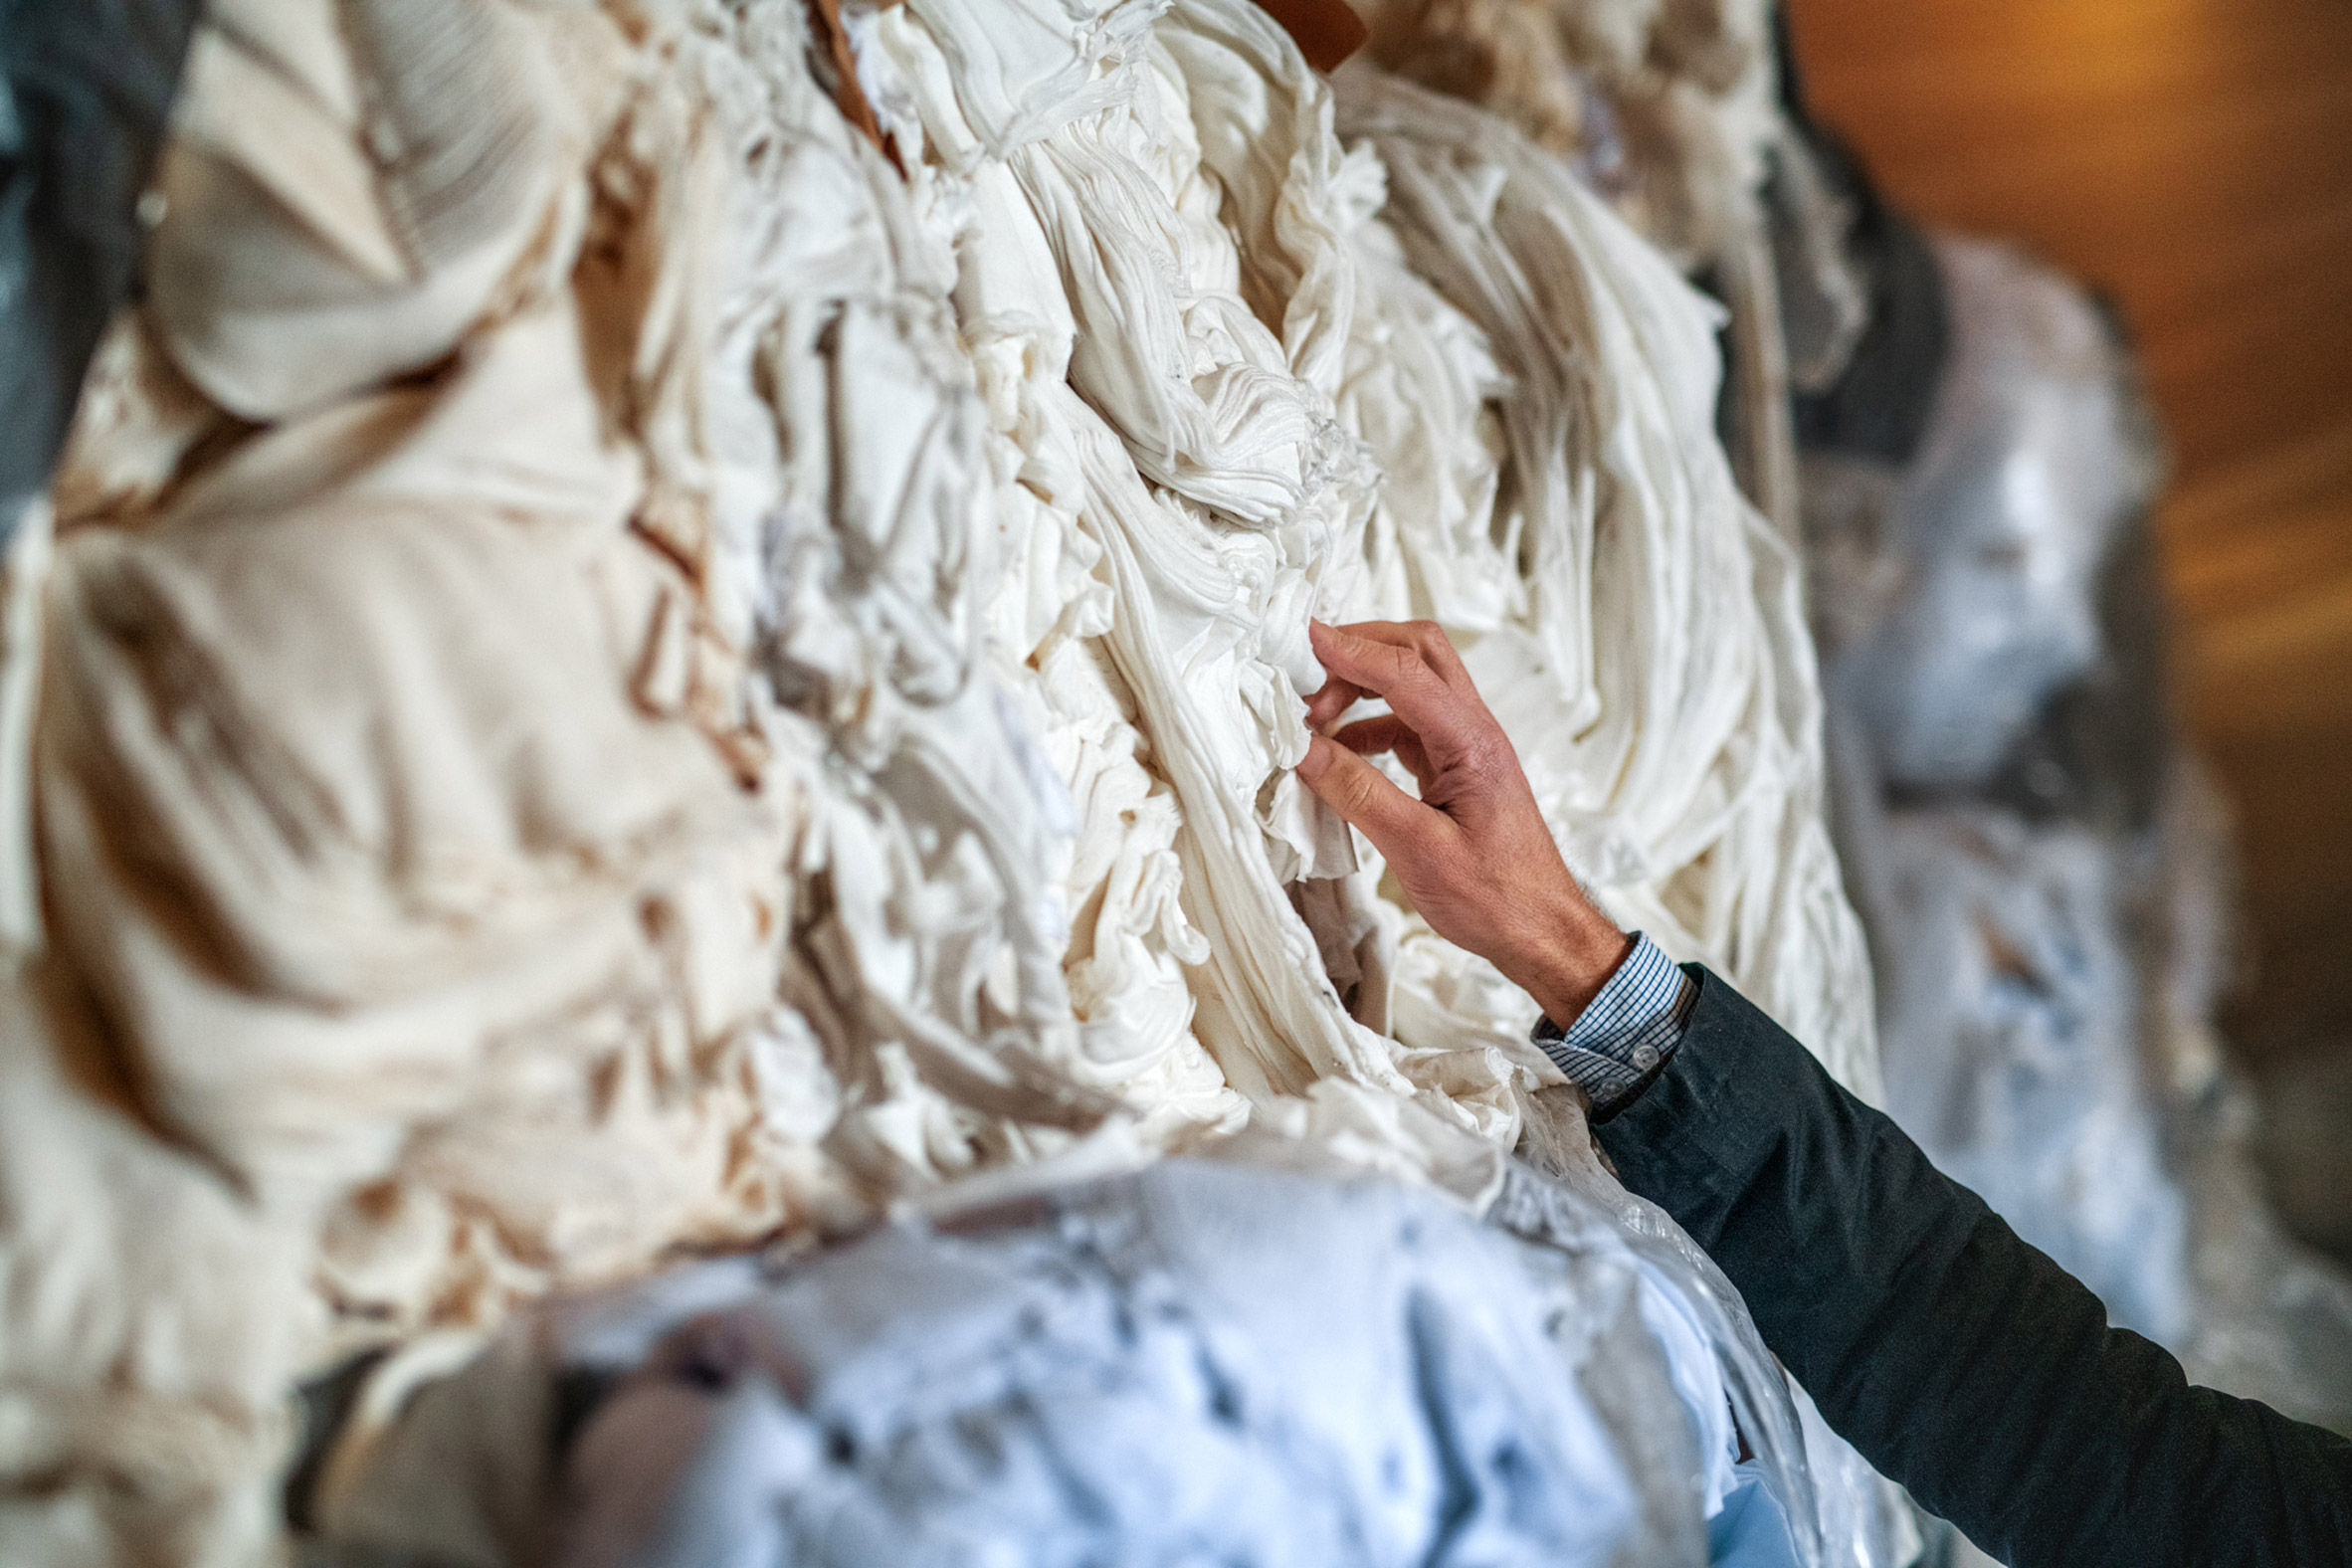 Circulose clothing made from recycled cotton